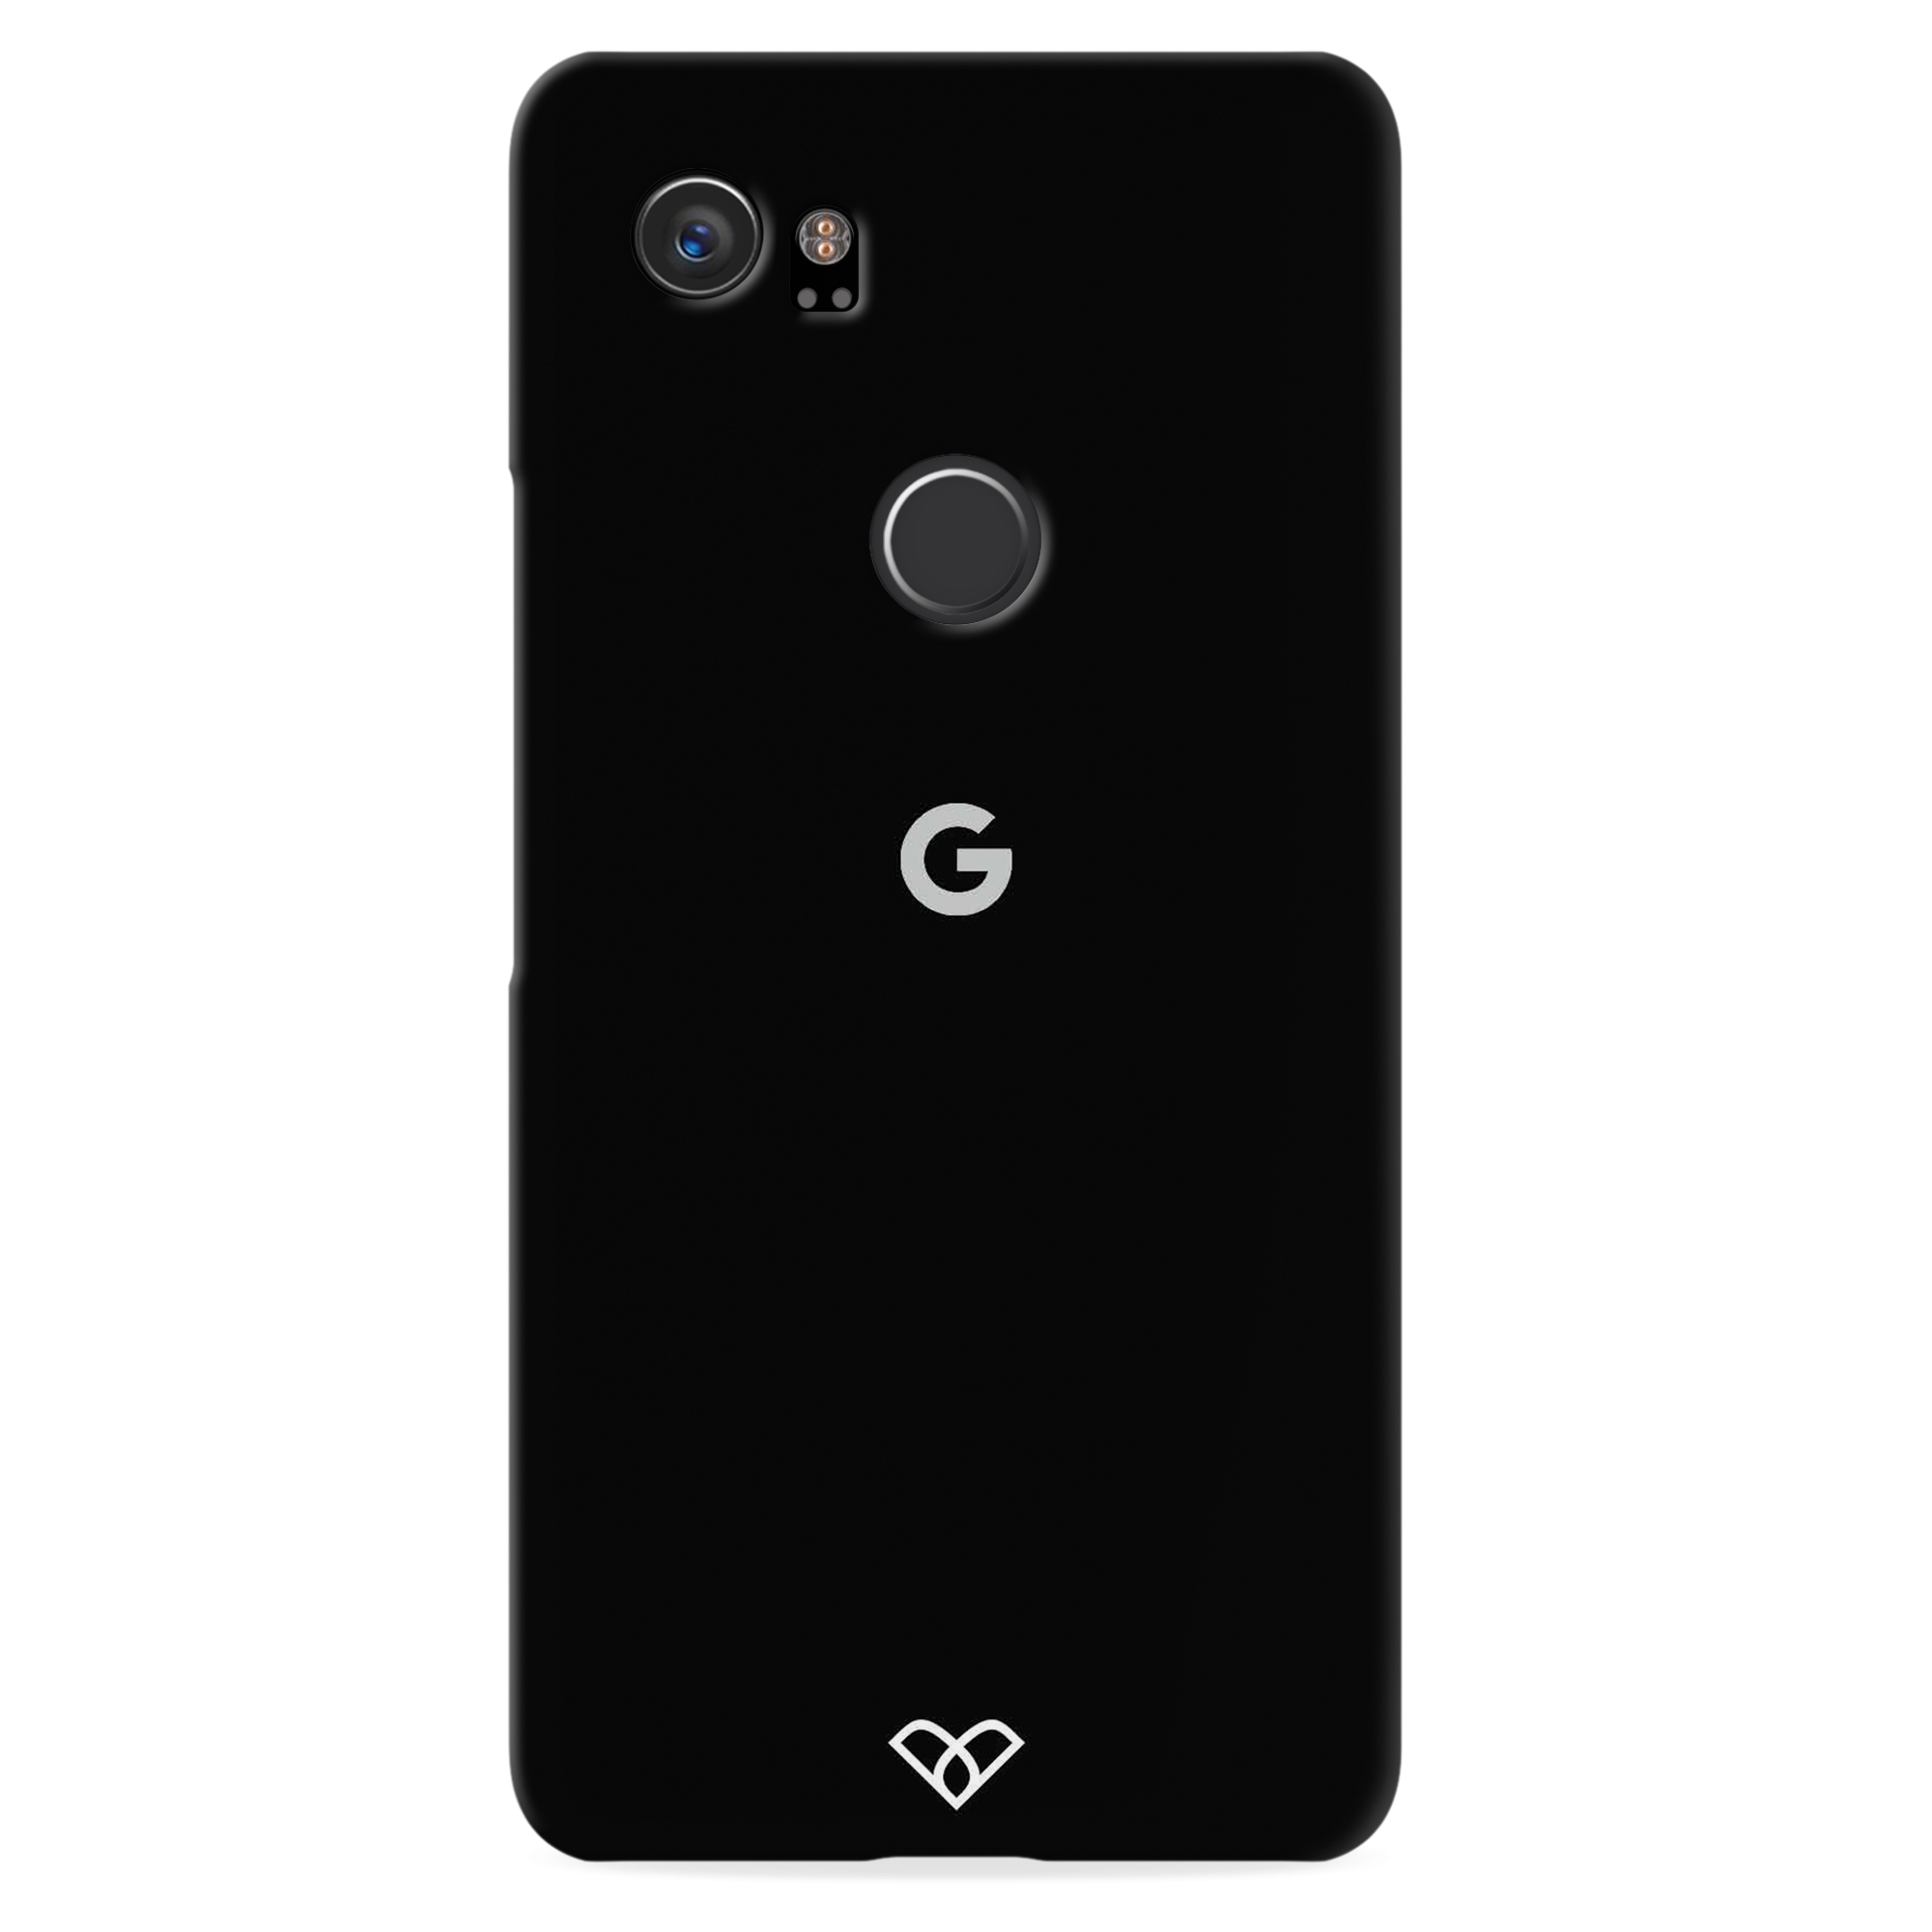 Jet Black Slim Case And Cover For Pixel 2 XL